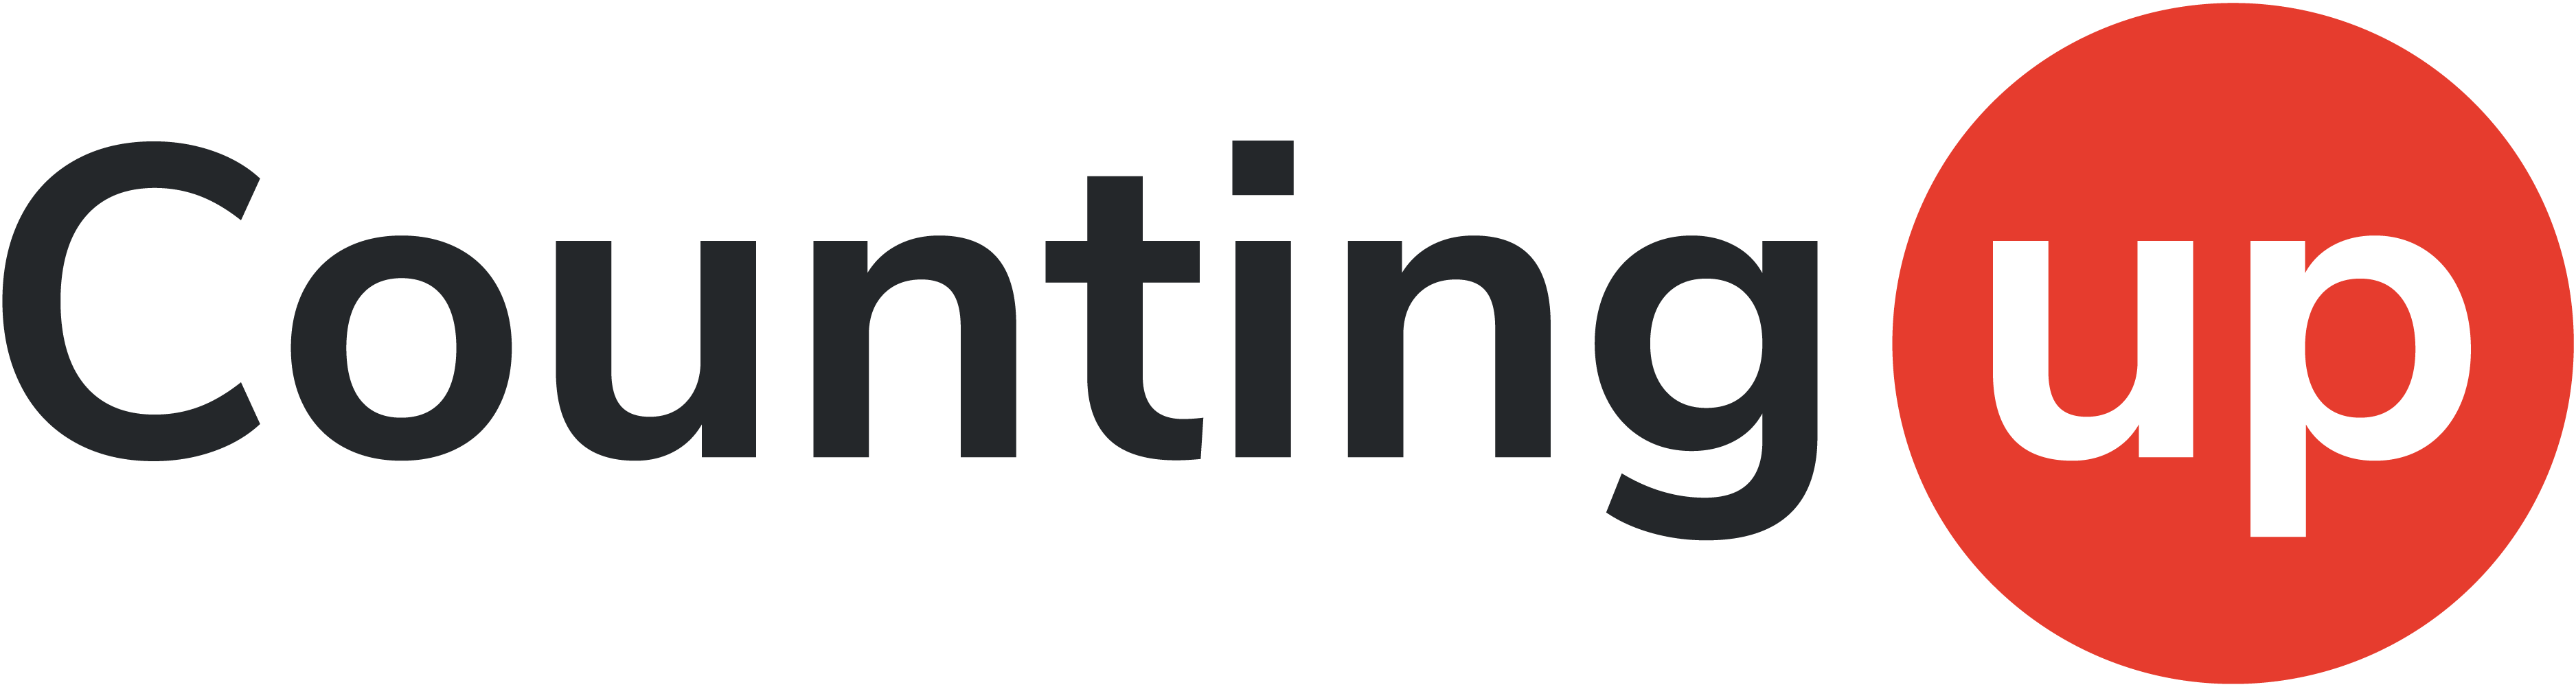 Countingup business account (starter)